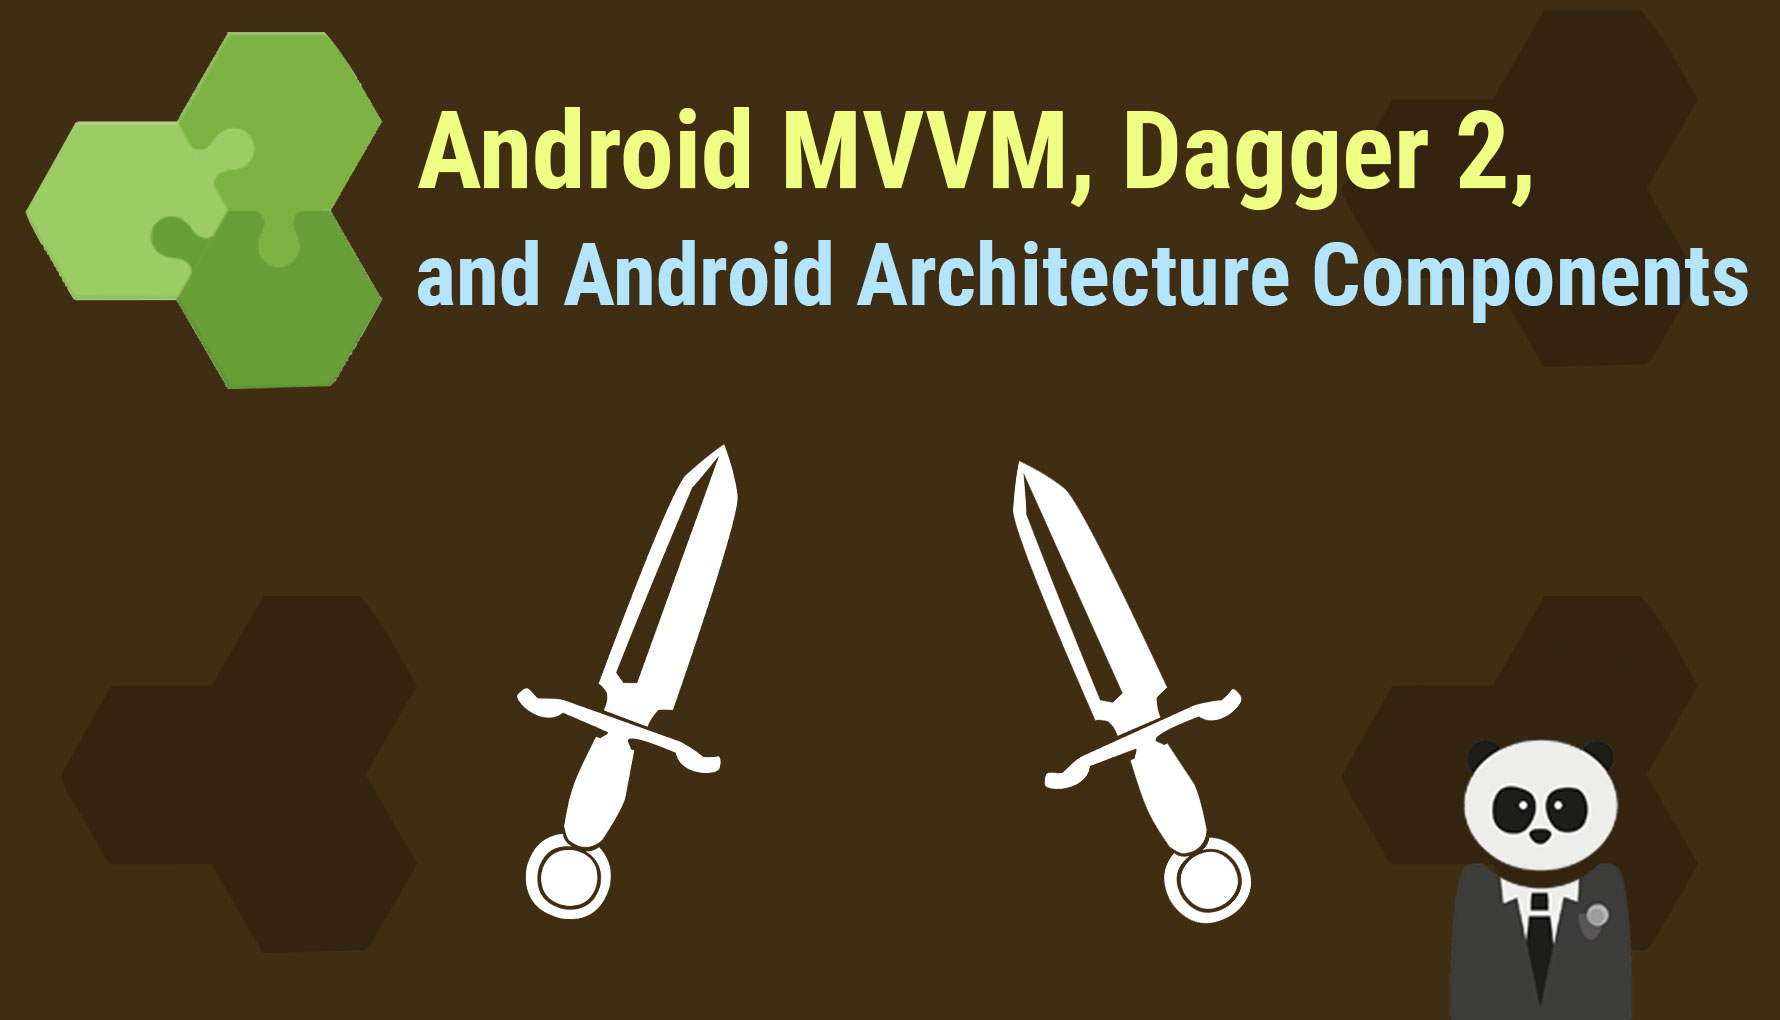 Android MVVM, Dagger 2 and Android Architecture Components